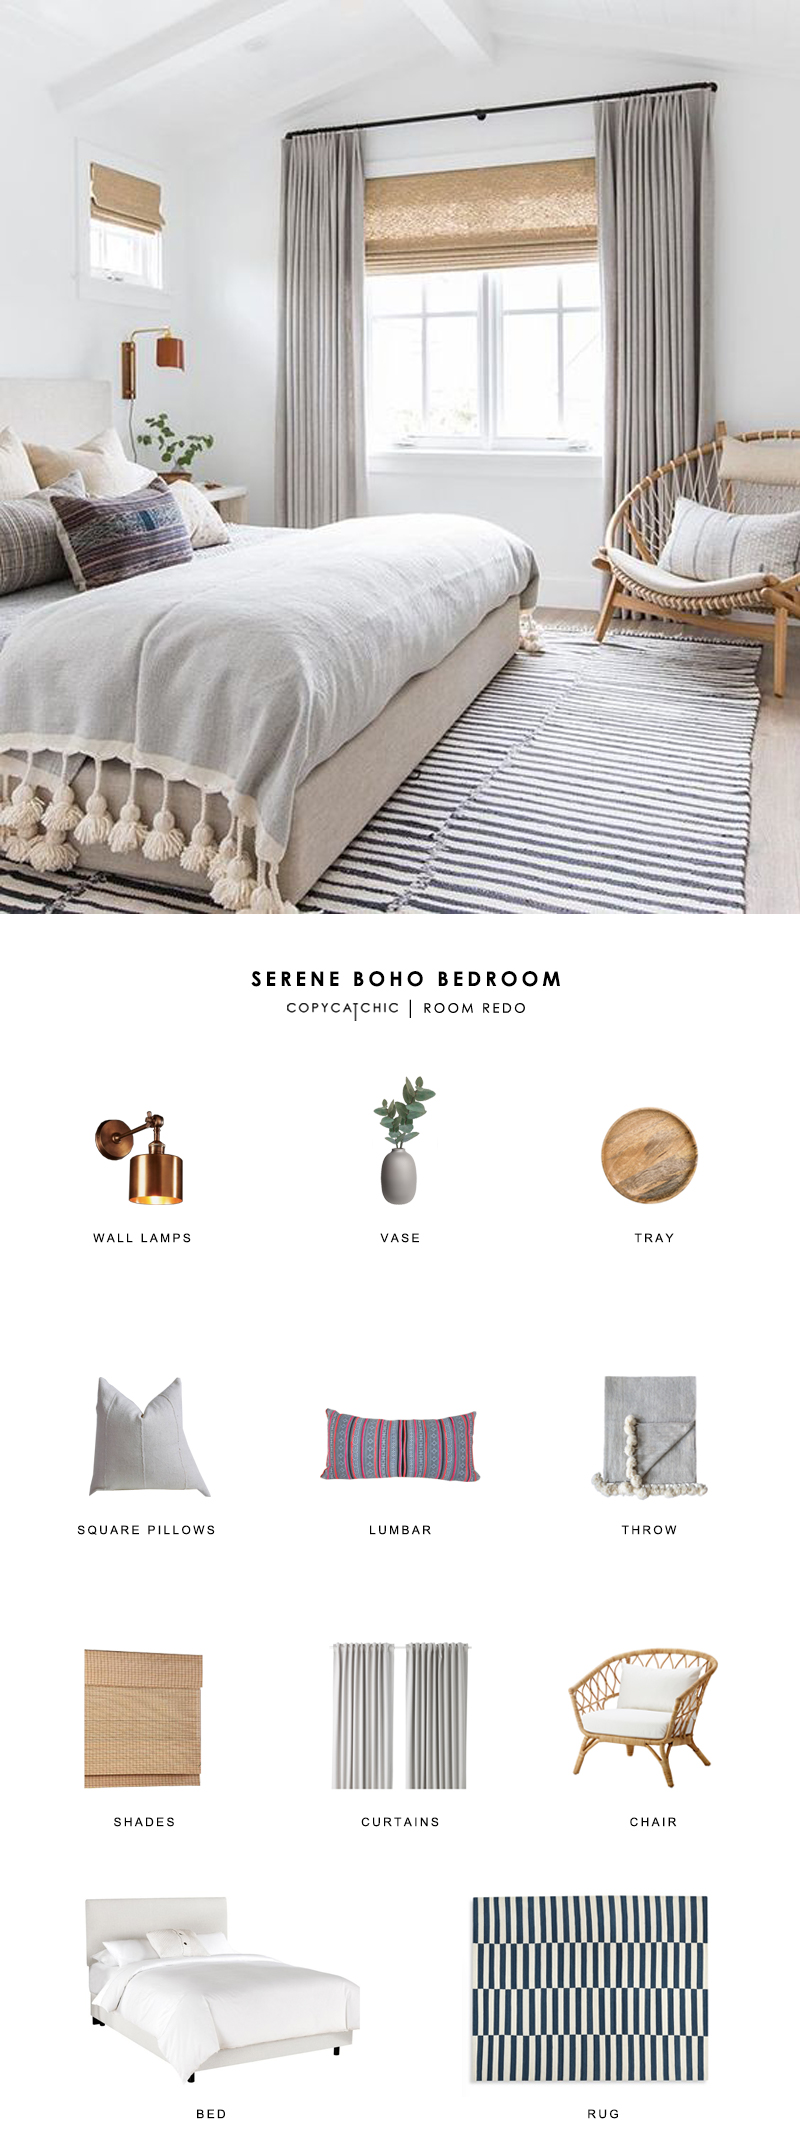 This serene boho bedroom by Amber Interiors is recreated for less by copycatchic luxe living for less budget home decor and design room redos